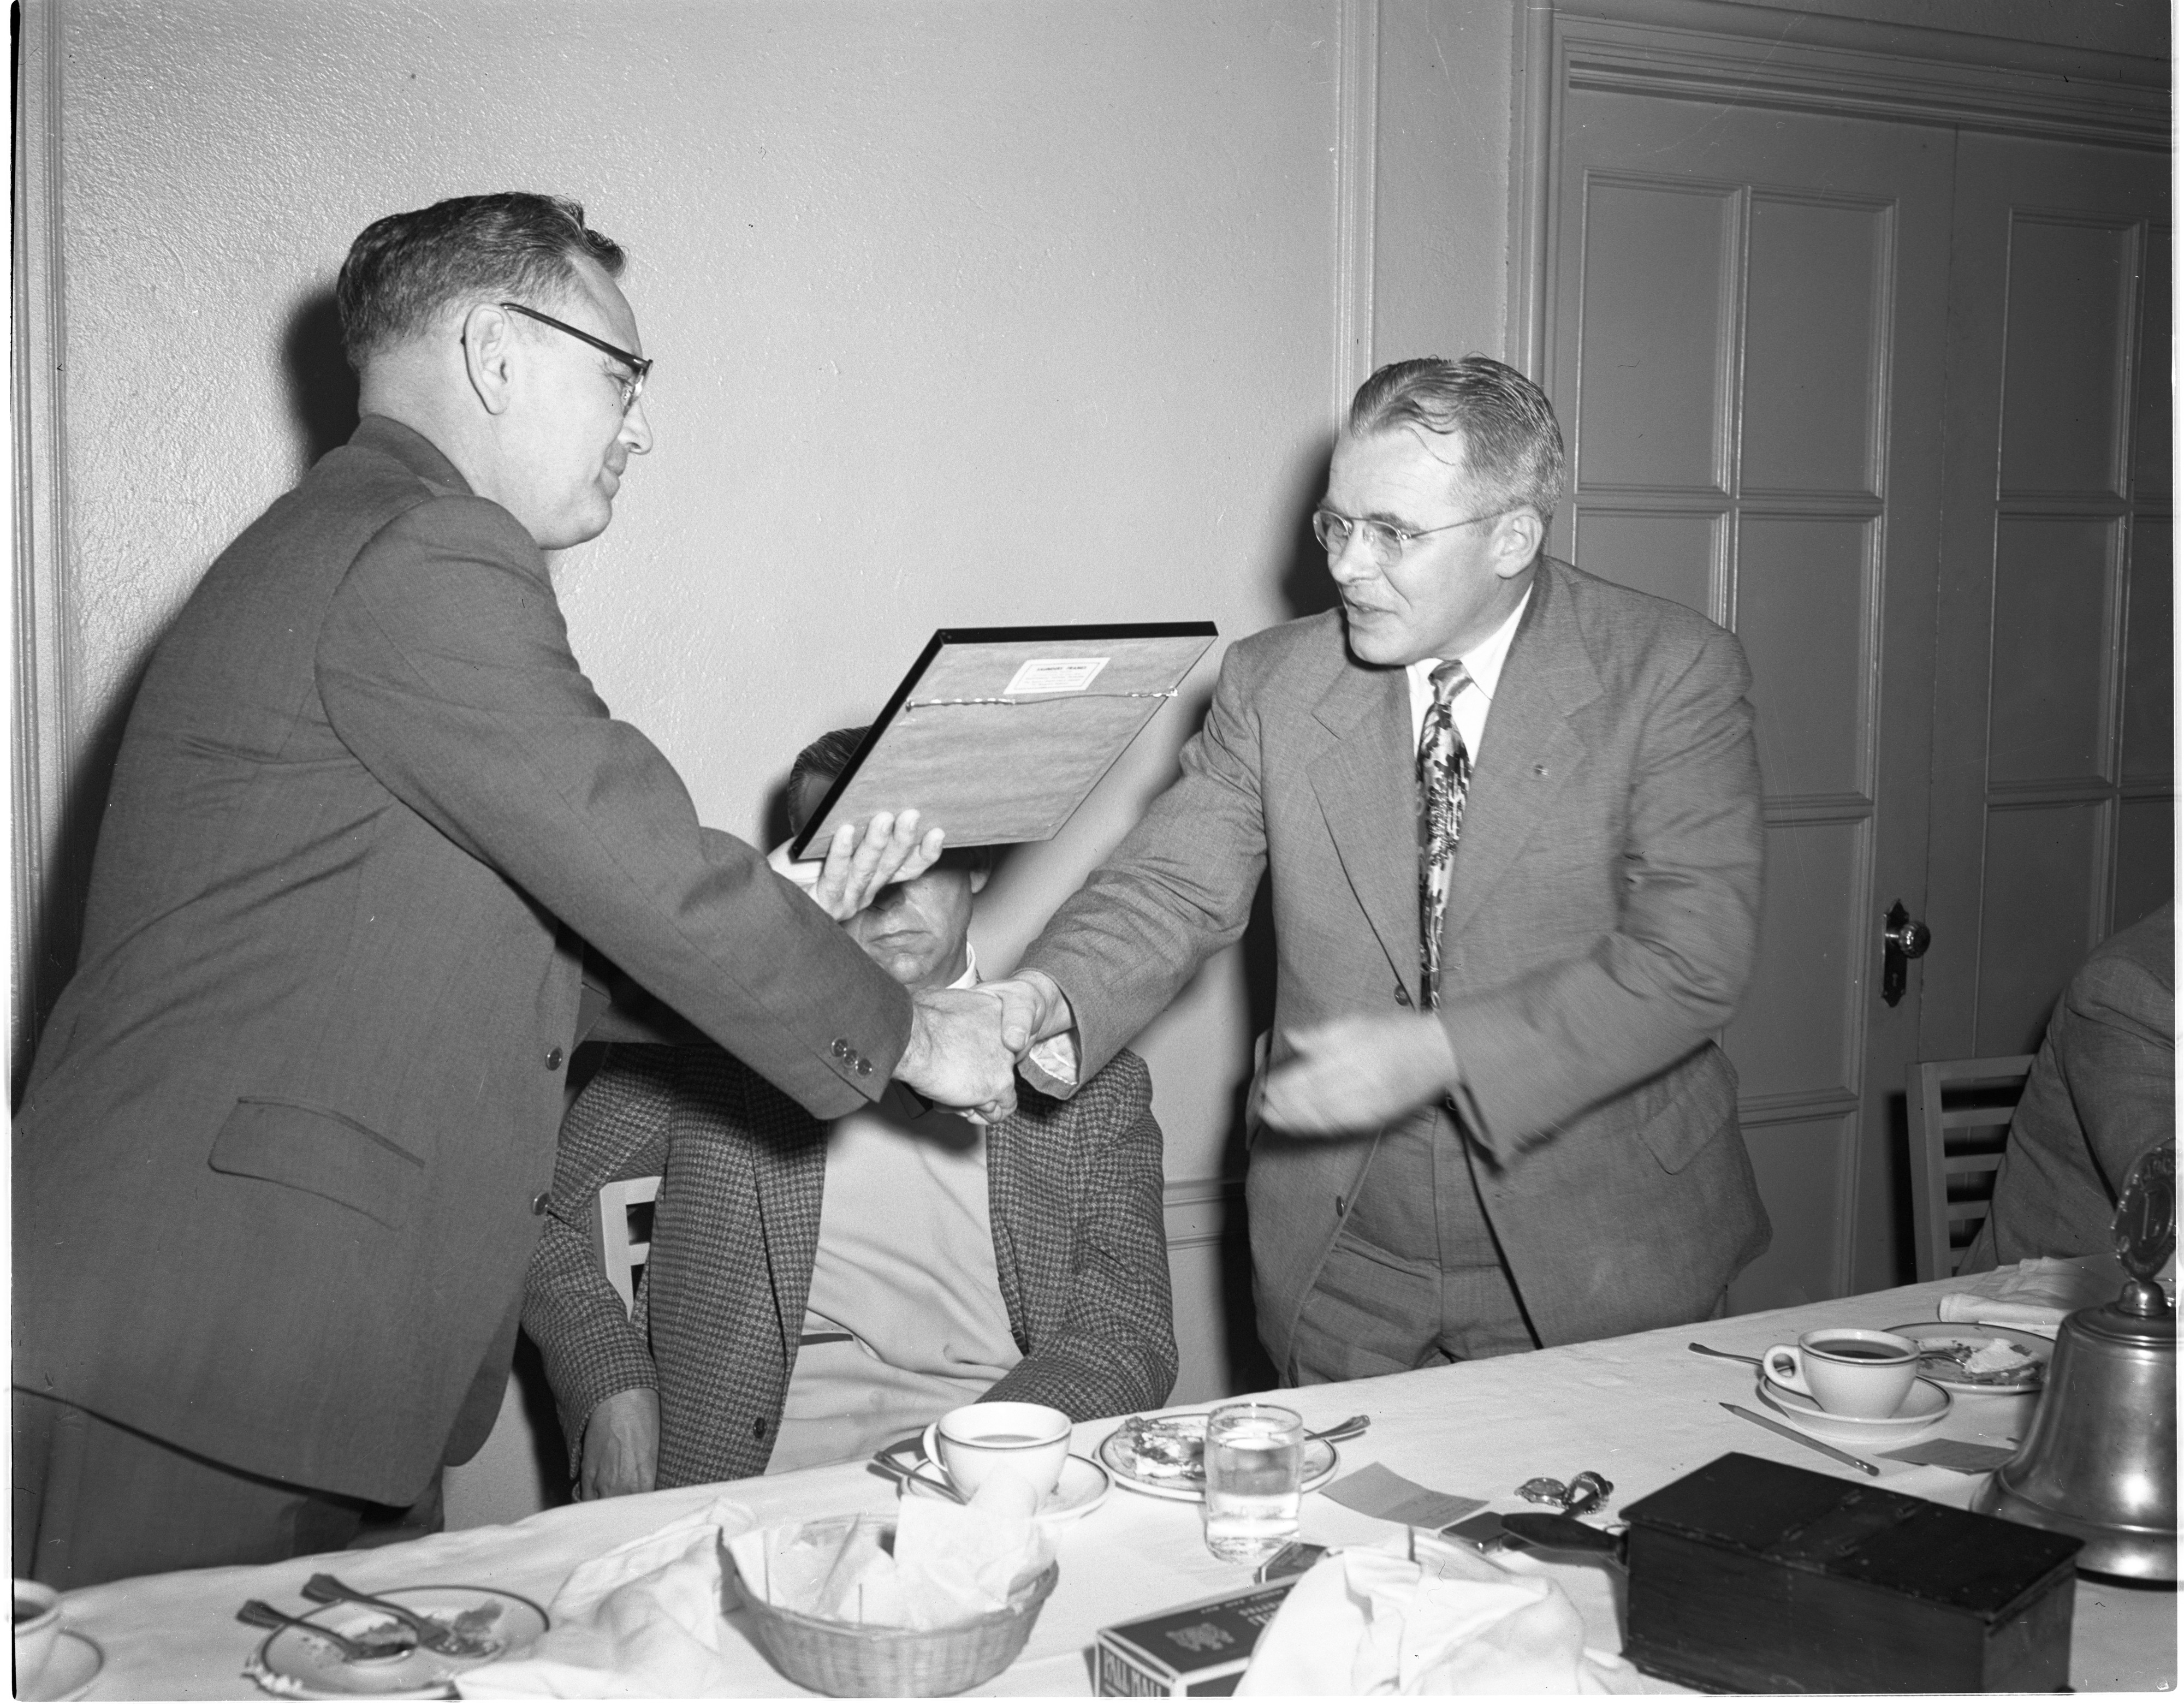 Elmer Mayer Of The Graf-O'Hara Post, VFW, Presents An Award To Ann Arbor Lions Club President Raymond Garner, May 1953 image